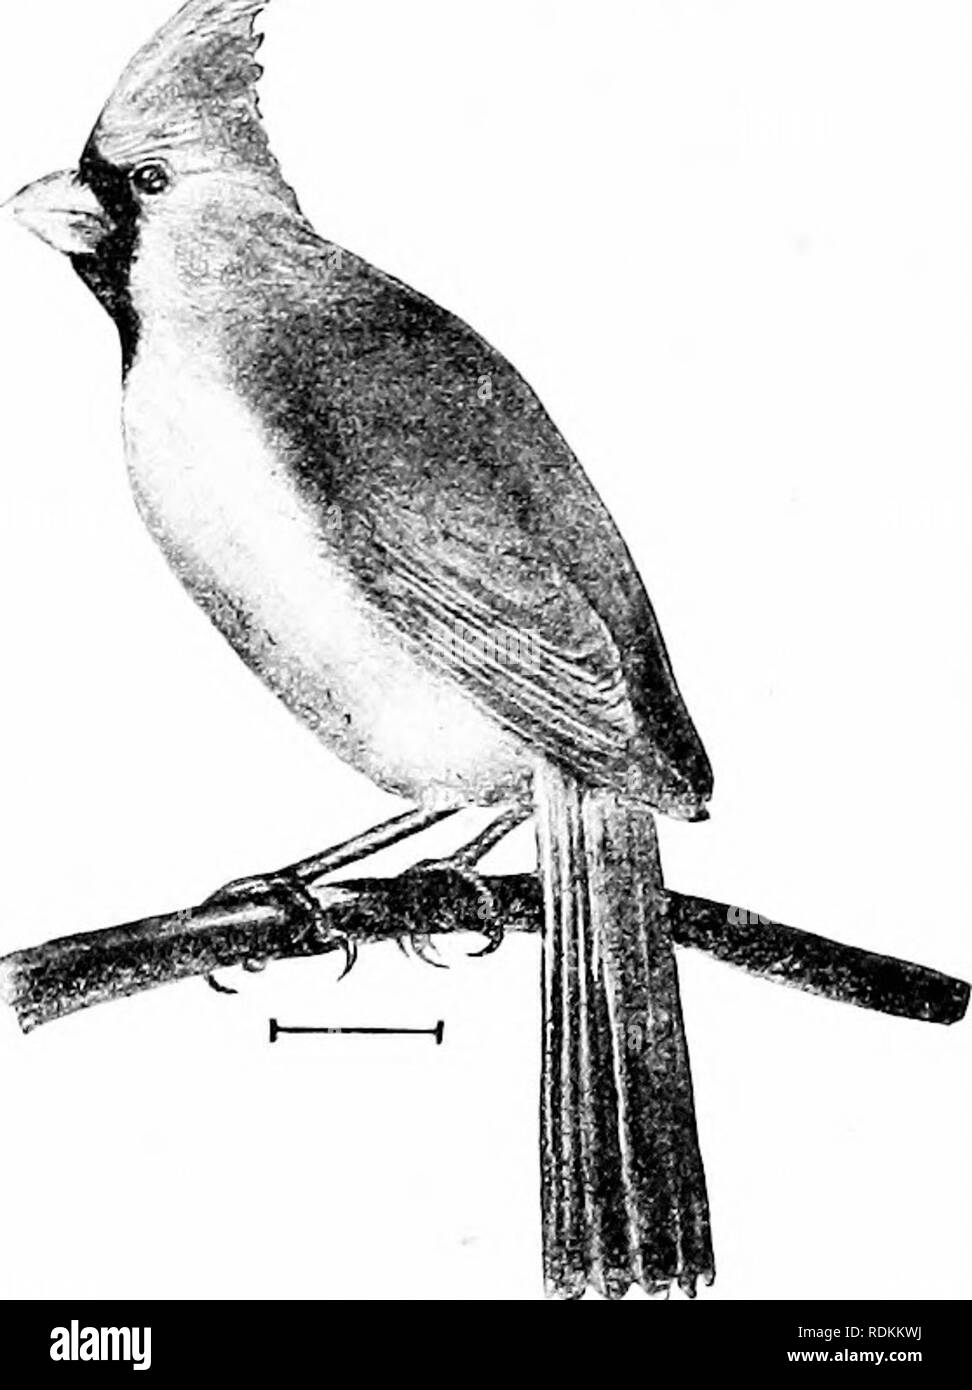 . Birds of the United States east of the Rocky Mountains; a manual for the identification of species in hand or in the bush. Birds. FA3I. XIII. FINCHES, SFARROWH, ETC. 137 44.' Cardinal (593. Cardinalis cardinMis). — A large, distinctly crested, red bird, with black around the red bill, most extensive on the throat. The female has less bright red anywhere, the under parts are buffy and the throat blackish. The crest, wings, and tail are dull red. ^^ These birds are fine song- sters and are frequently kept in cages; both sexes sing. They are resident birds wher- ever they are found, and as they - Stock Image